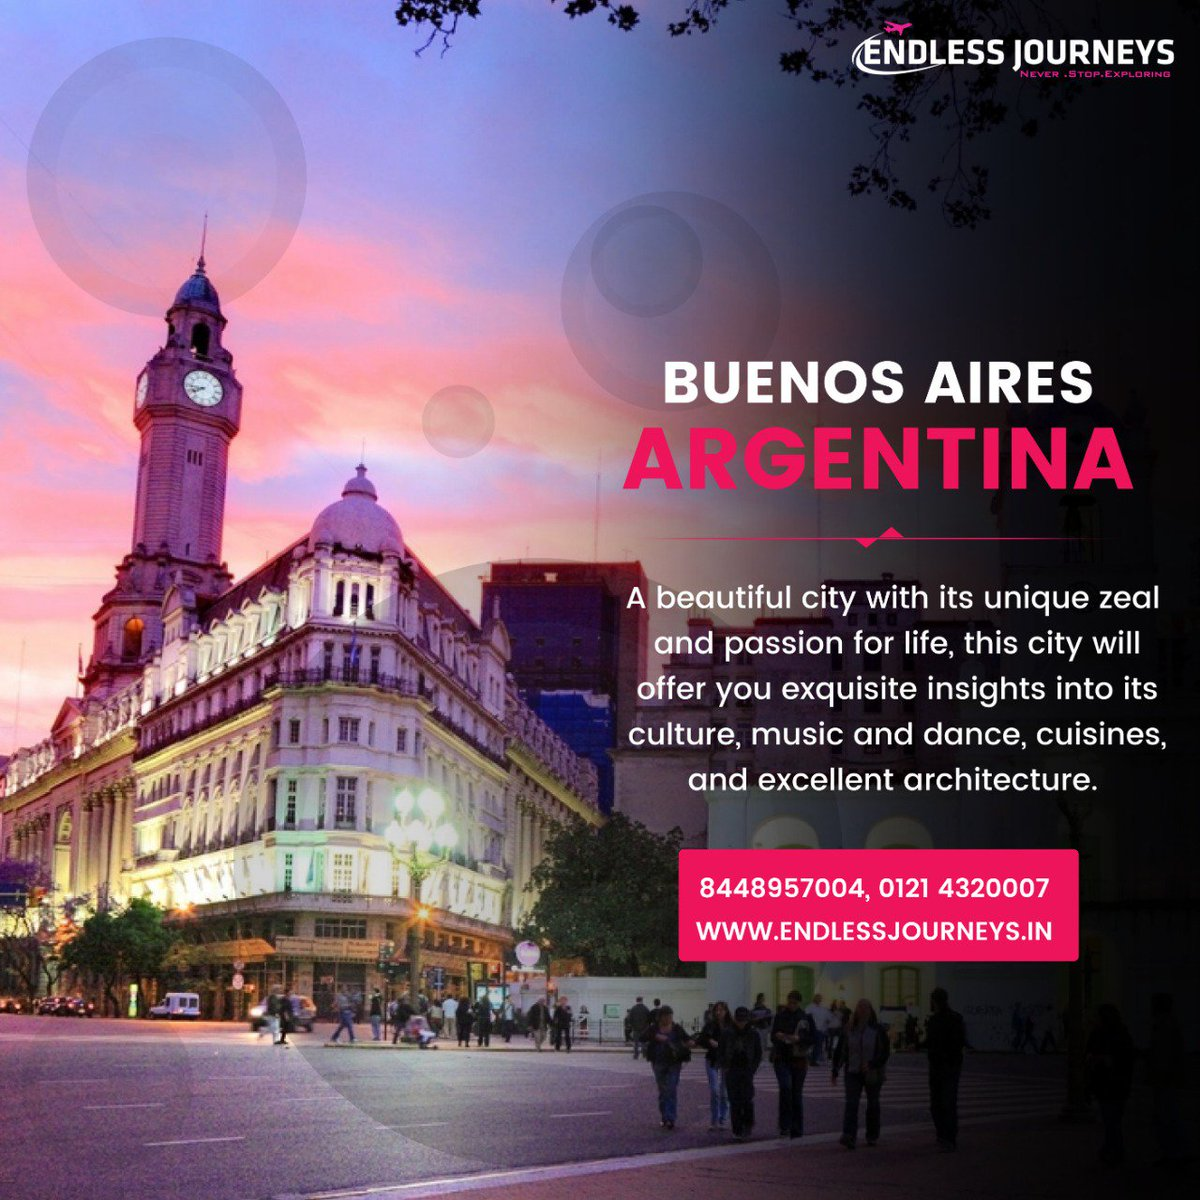 A truly intriguing and exclusive destination that boasts of European heritage, Buenos Aires is sometimes called the 'Paris of South America'.  Speak to our Travel Agent: 8448957005 | 9027072186 #endlessjourneys #buenosaires #buenosairescity #buenosairesphoto #buenosairesargentinapic.twitter.com/Fml3CEjv3Q